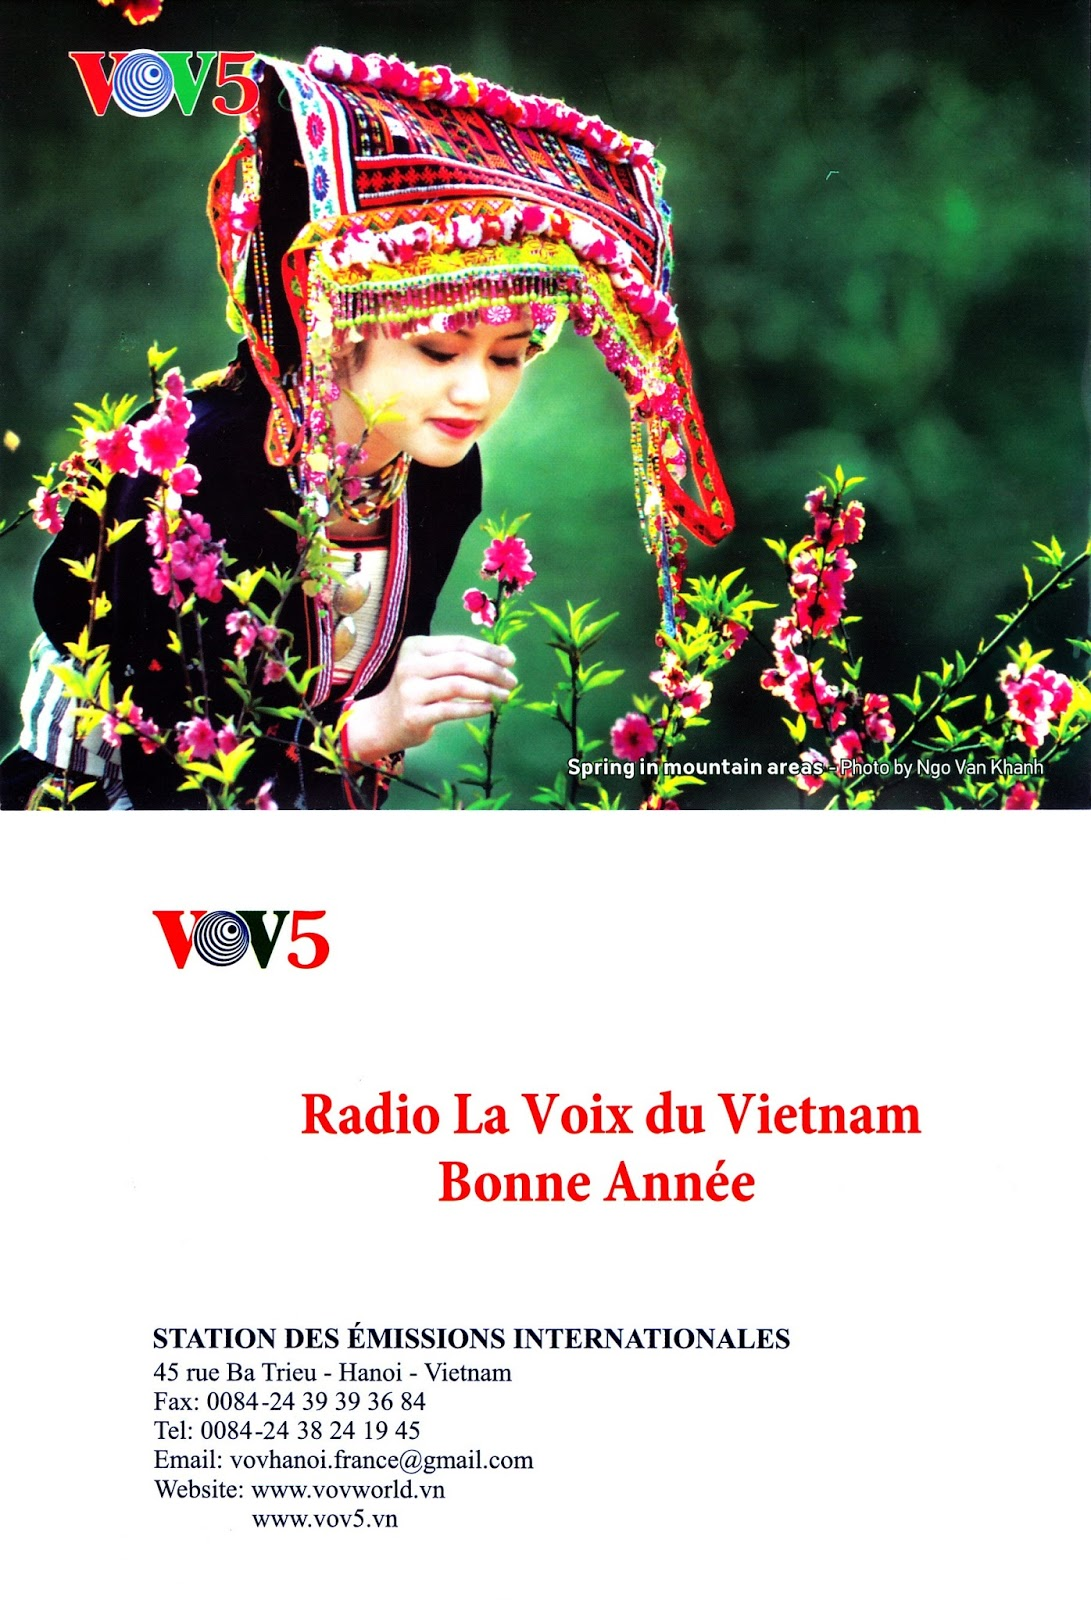 South east asia dxing voice of vietnam new year greetings voice of vietnam new year greetings kristyandbryce Images